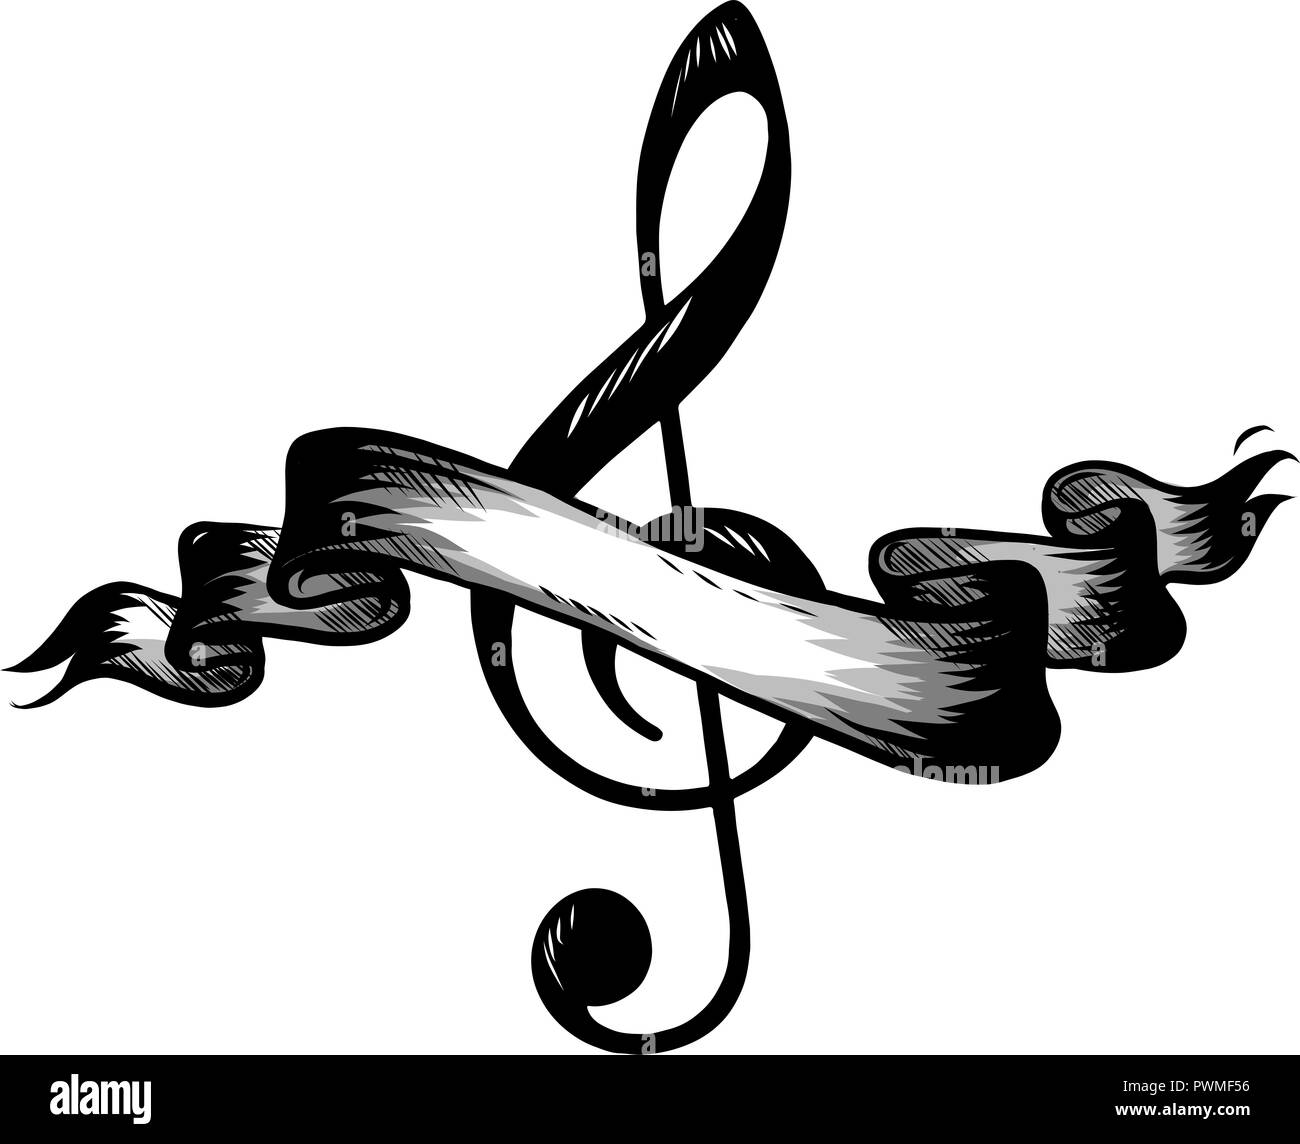 Music notes, song, melody or tune flat  icon for musical apps and websites - Stock Image